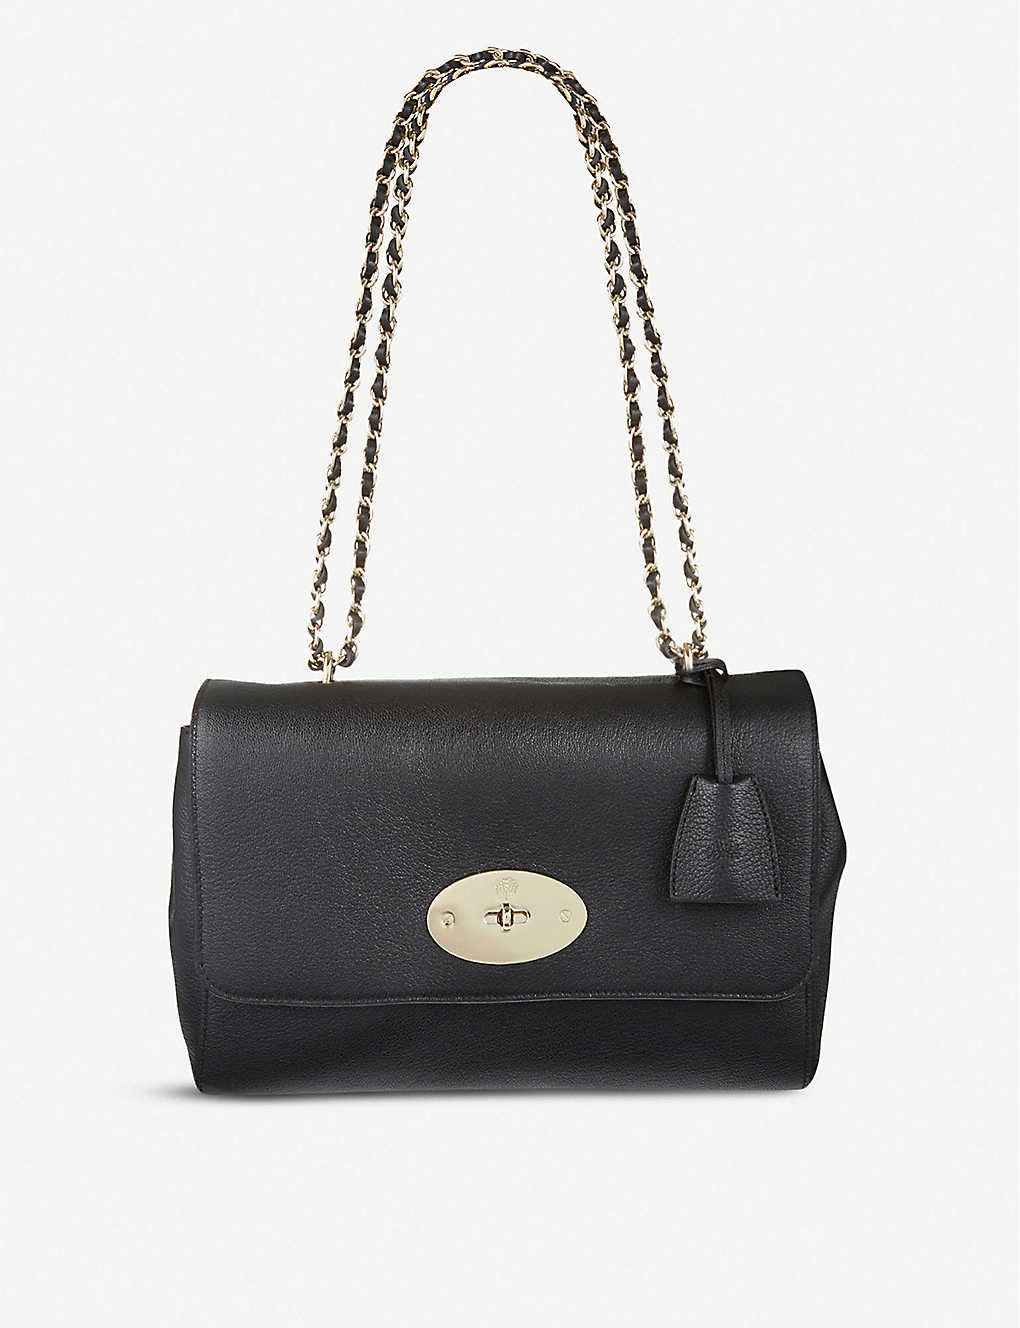 Mulberry Across The Shoulder Bag 2